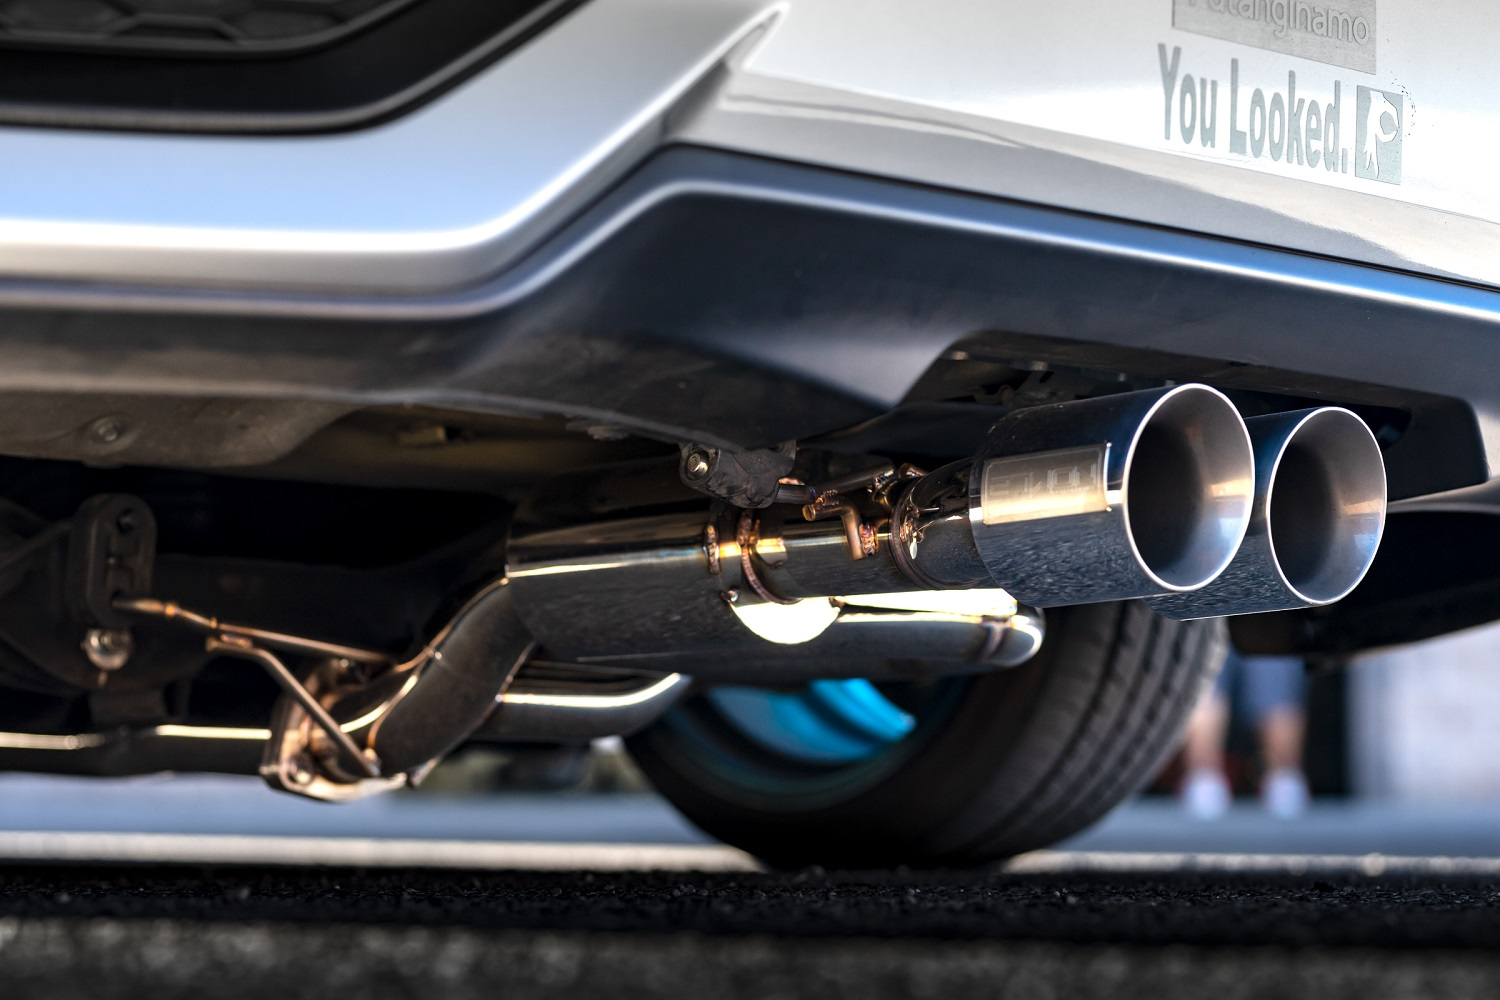 2017 civic si front pipe back exhaust